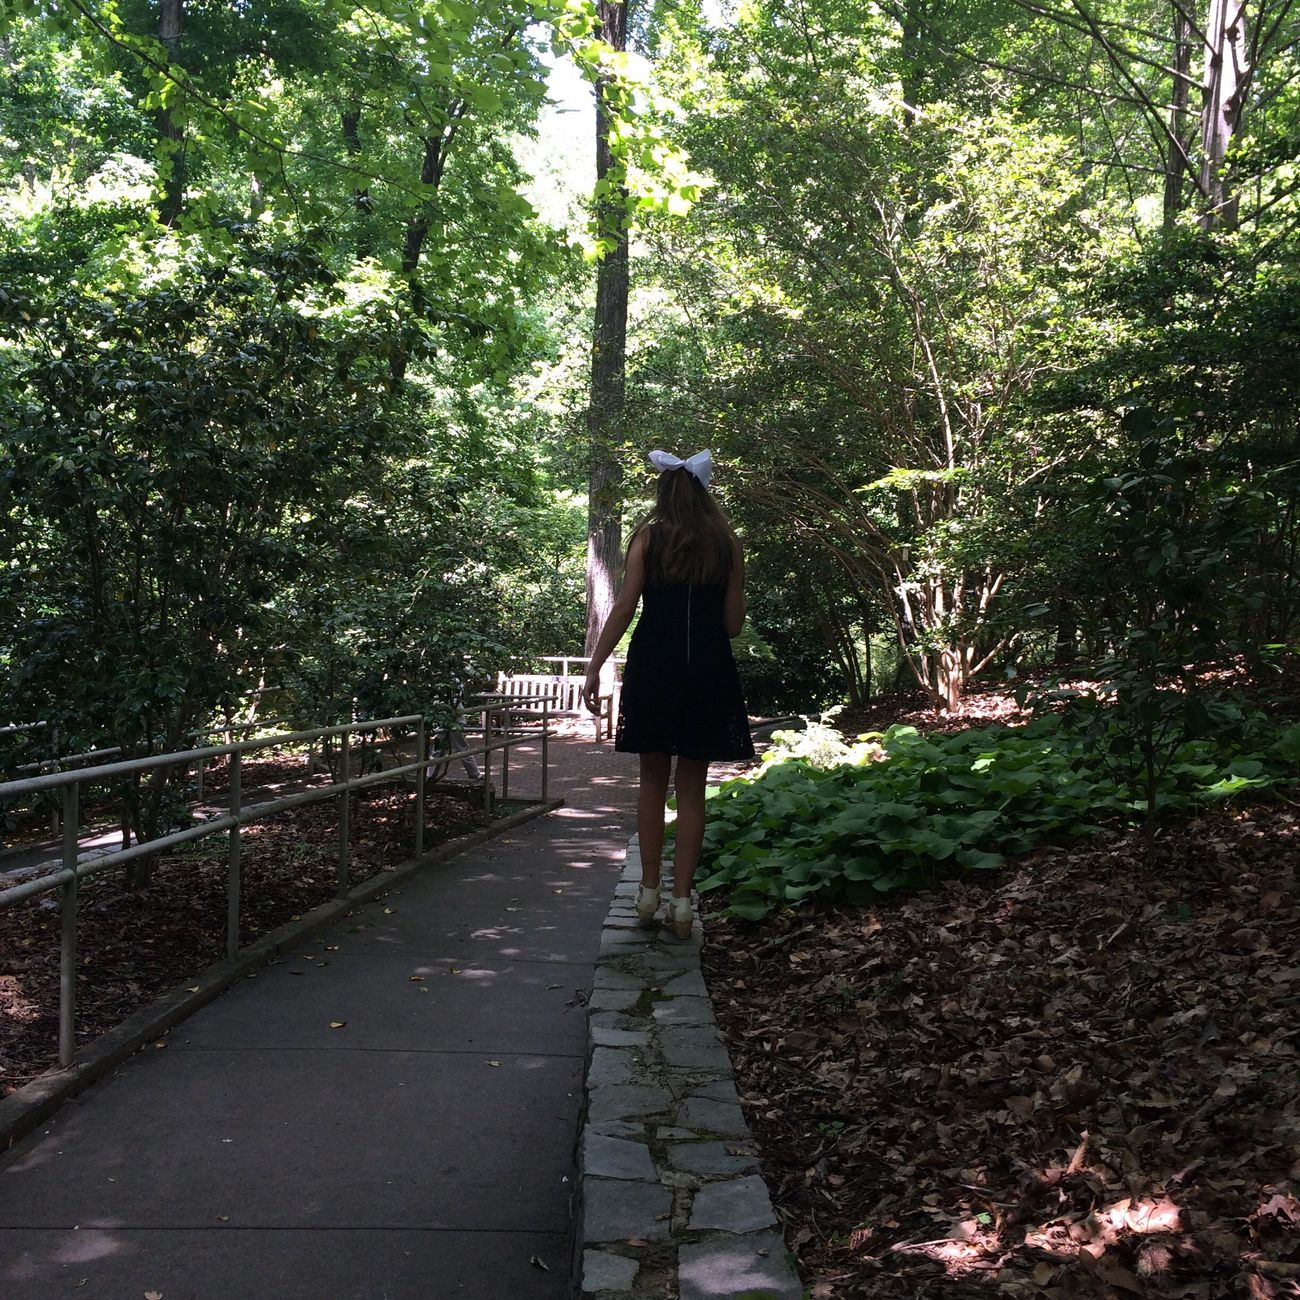 Path Girl Walk Tree Garden Real People Long Hair Leisure Activity Lifestyles Nature Full Length Growth